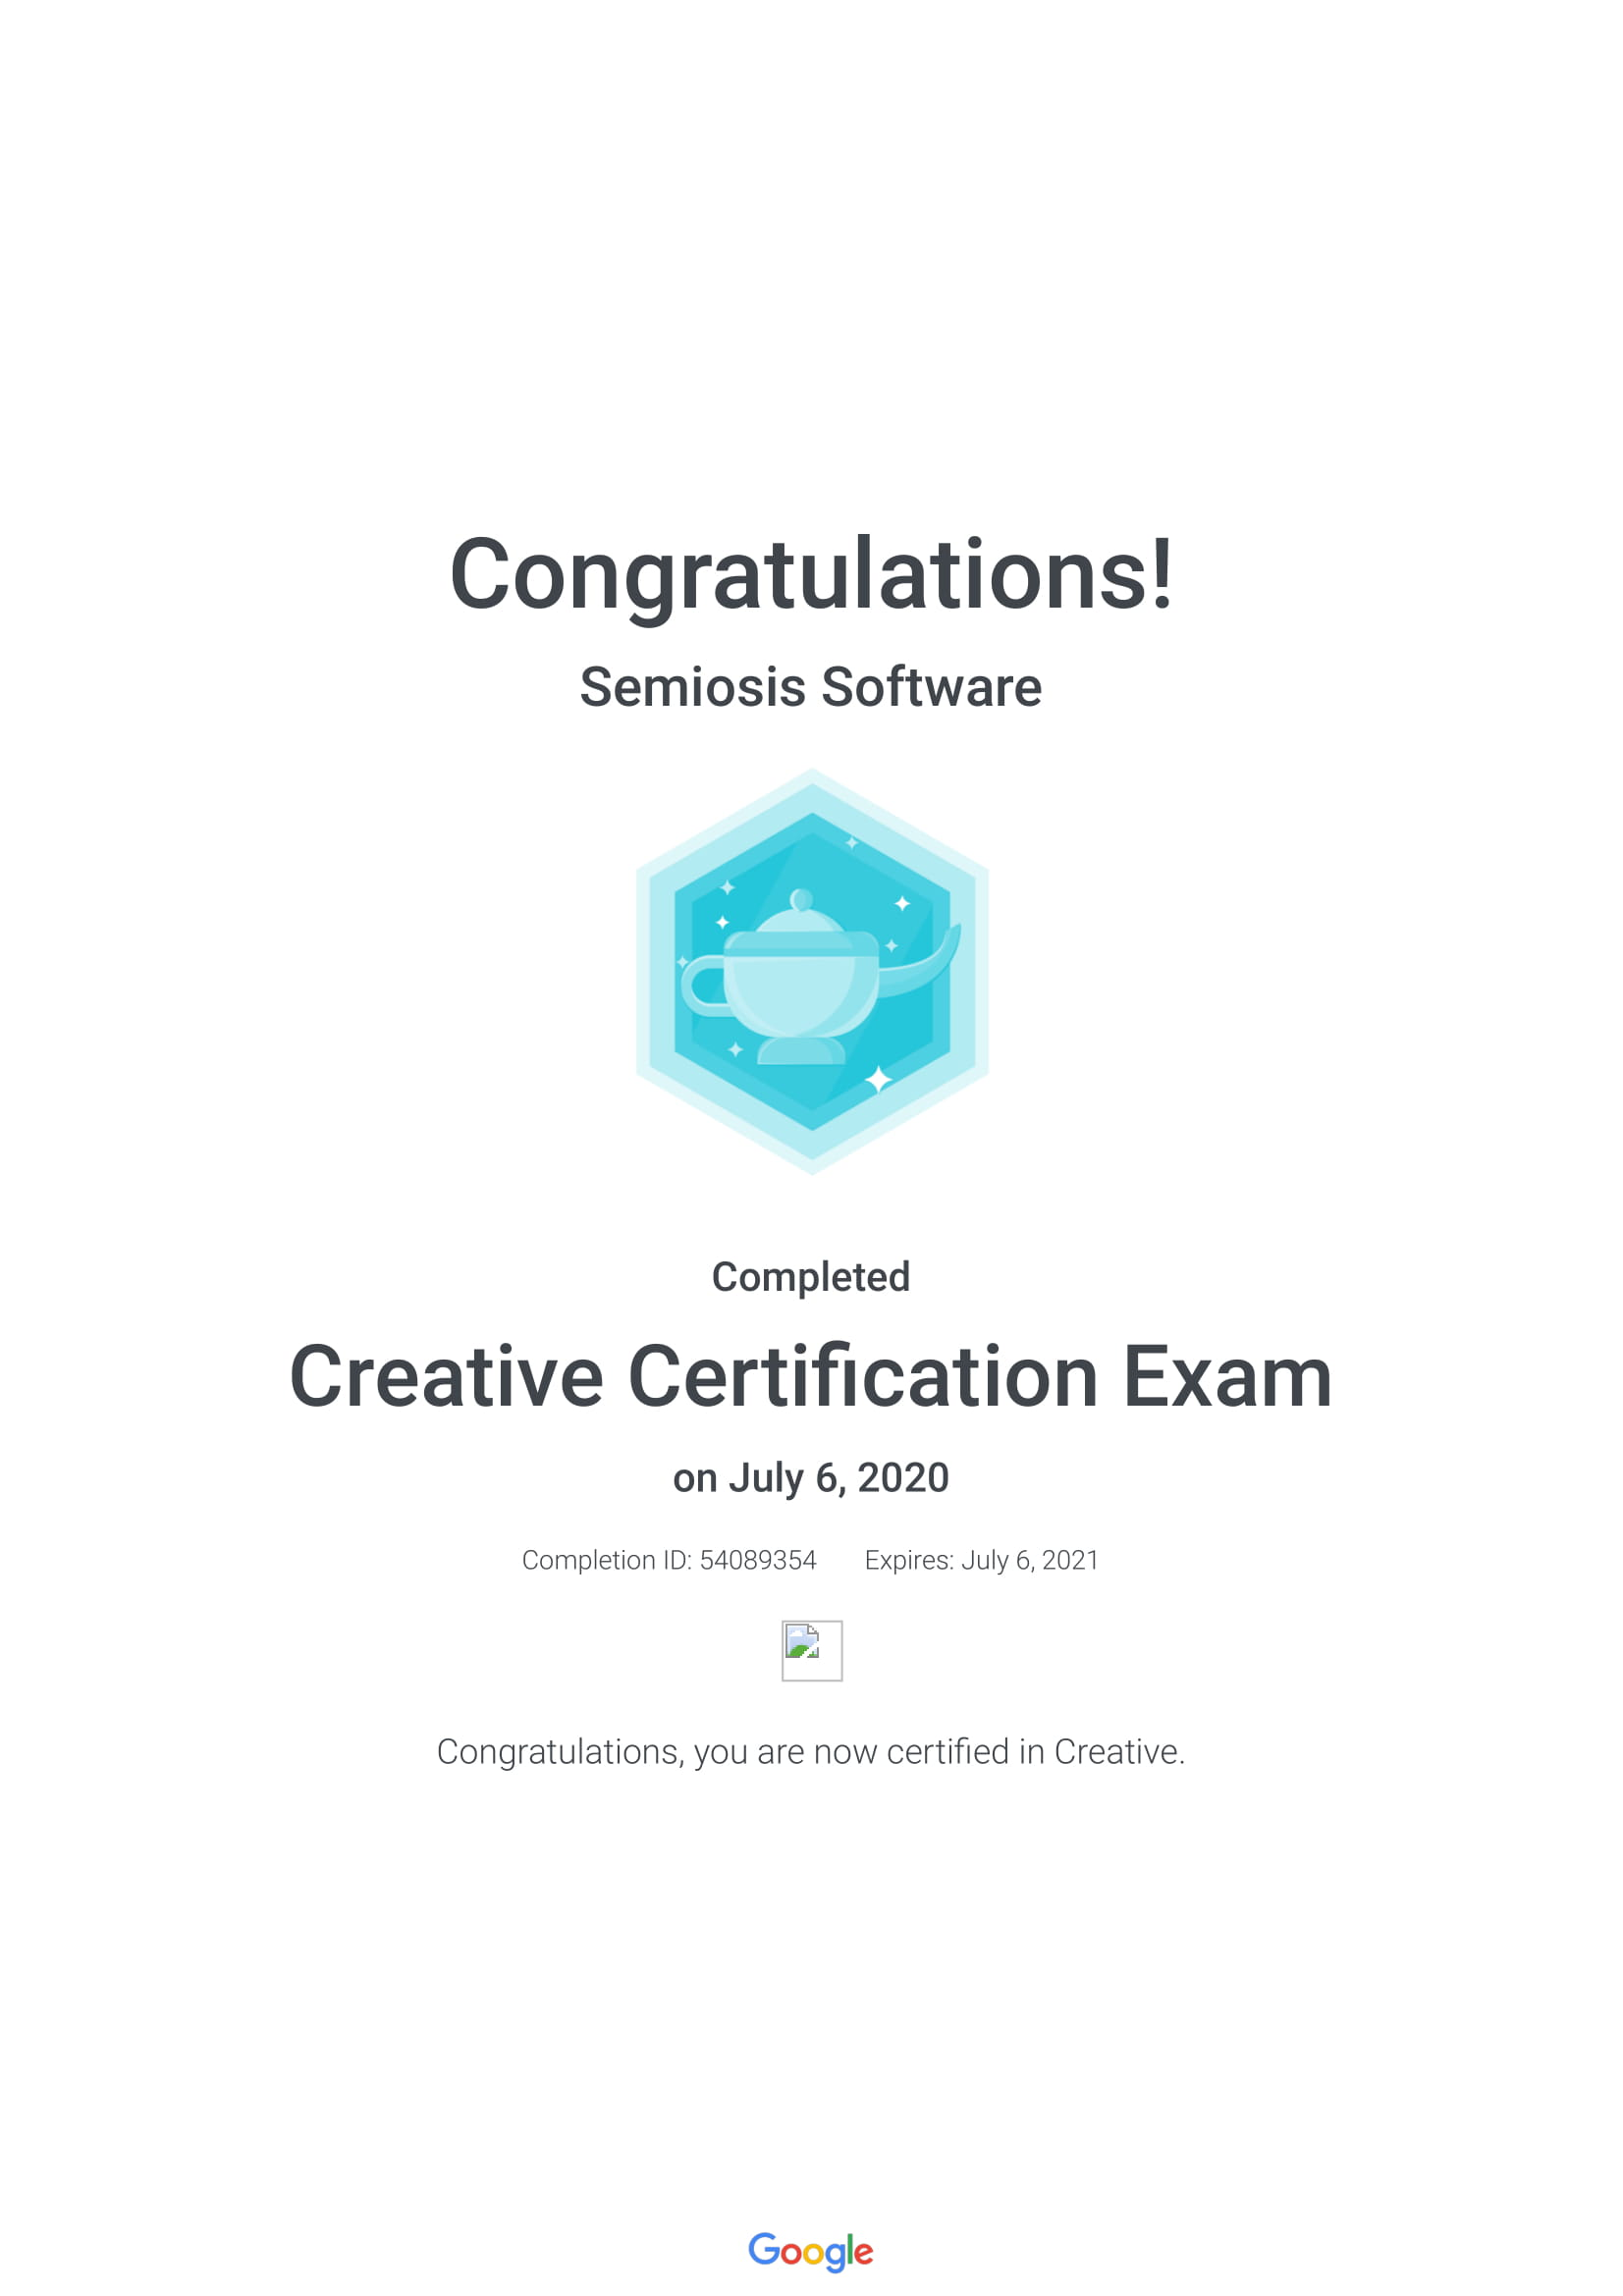 Creative Certification Exam